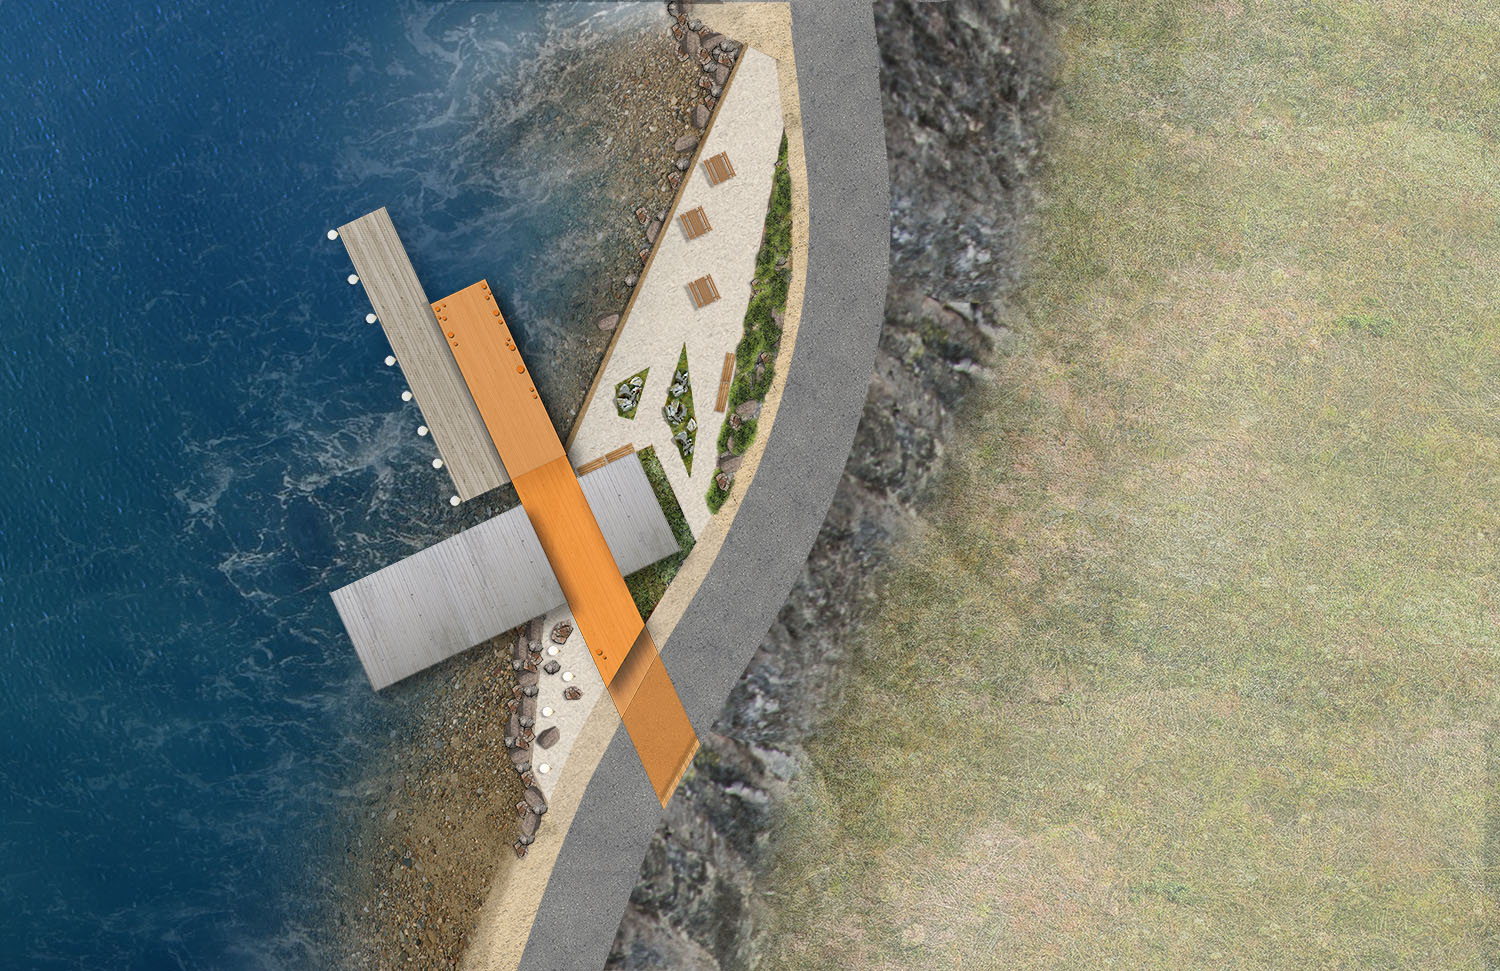 The site plan enforces the linear nature of the building and the wharf. The property will be treated to blend in with the surrounding landscape while providing accessible paths, picnic areas, and spill out space for events